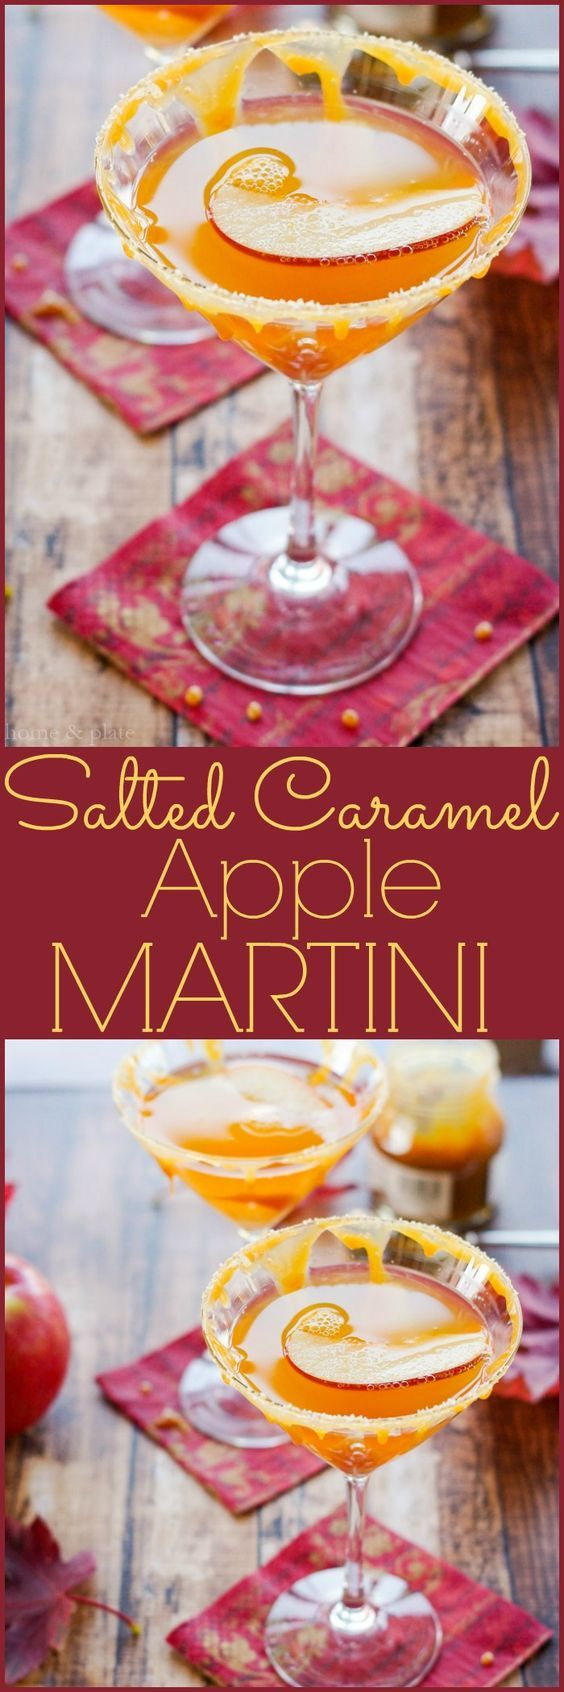 Salted Caramel Apple Martini | www.homeandplate.com | Fresh apple cider and caramel flavored vodka make up this fabulous fall drink.